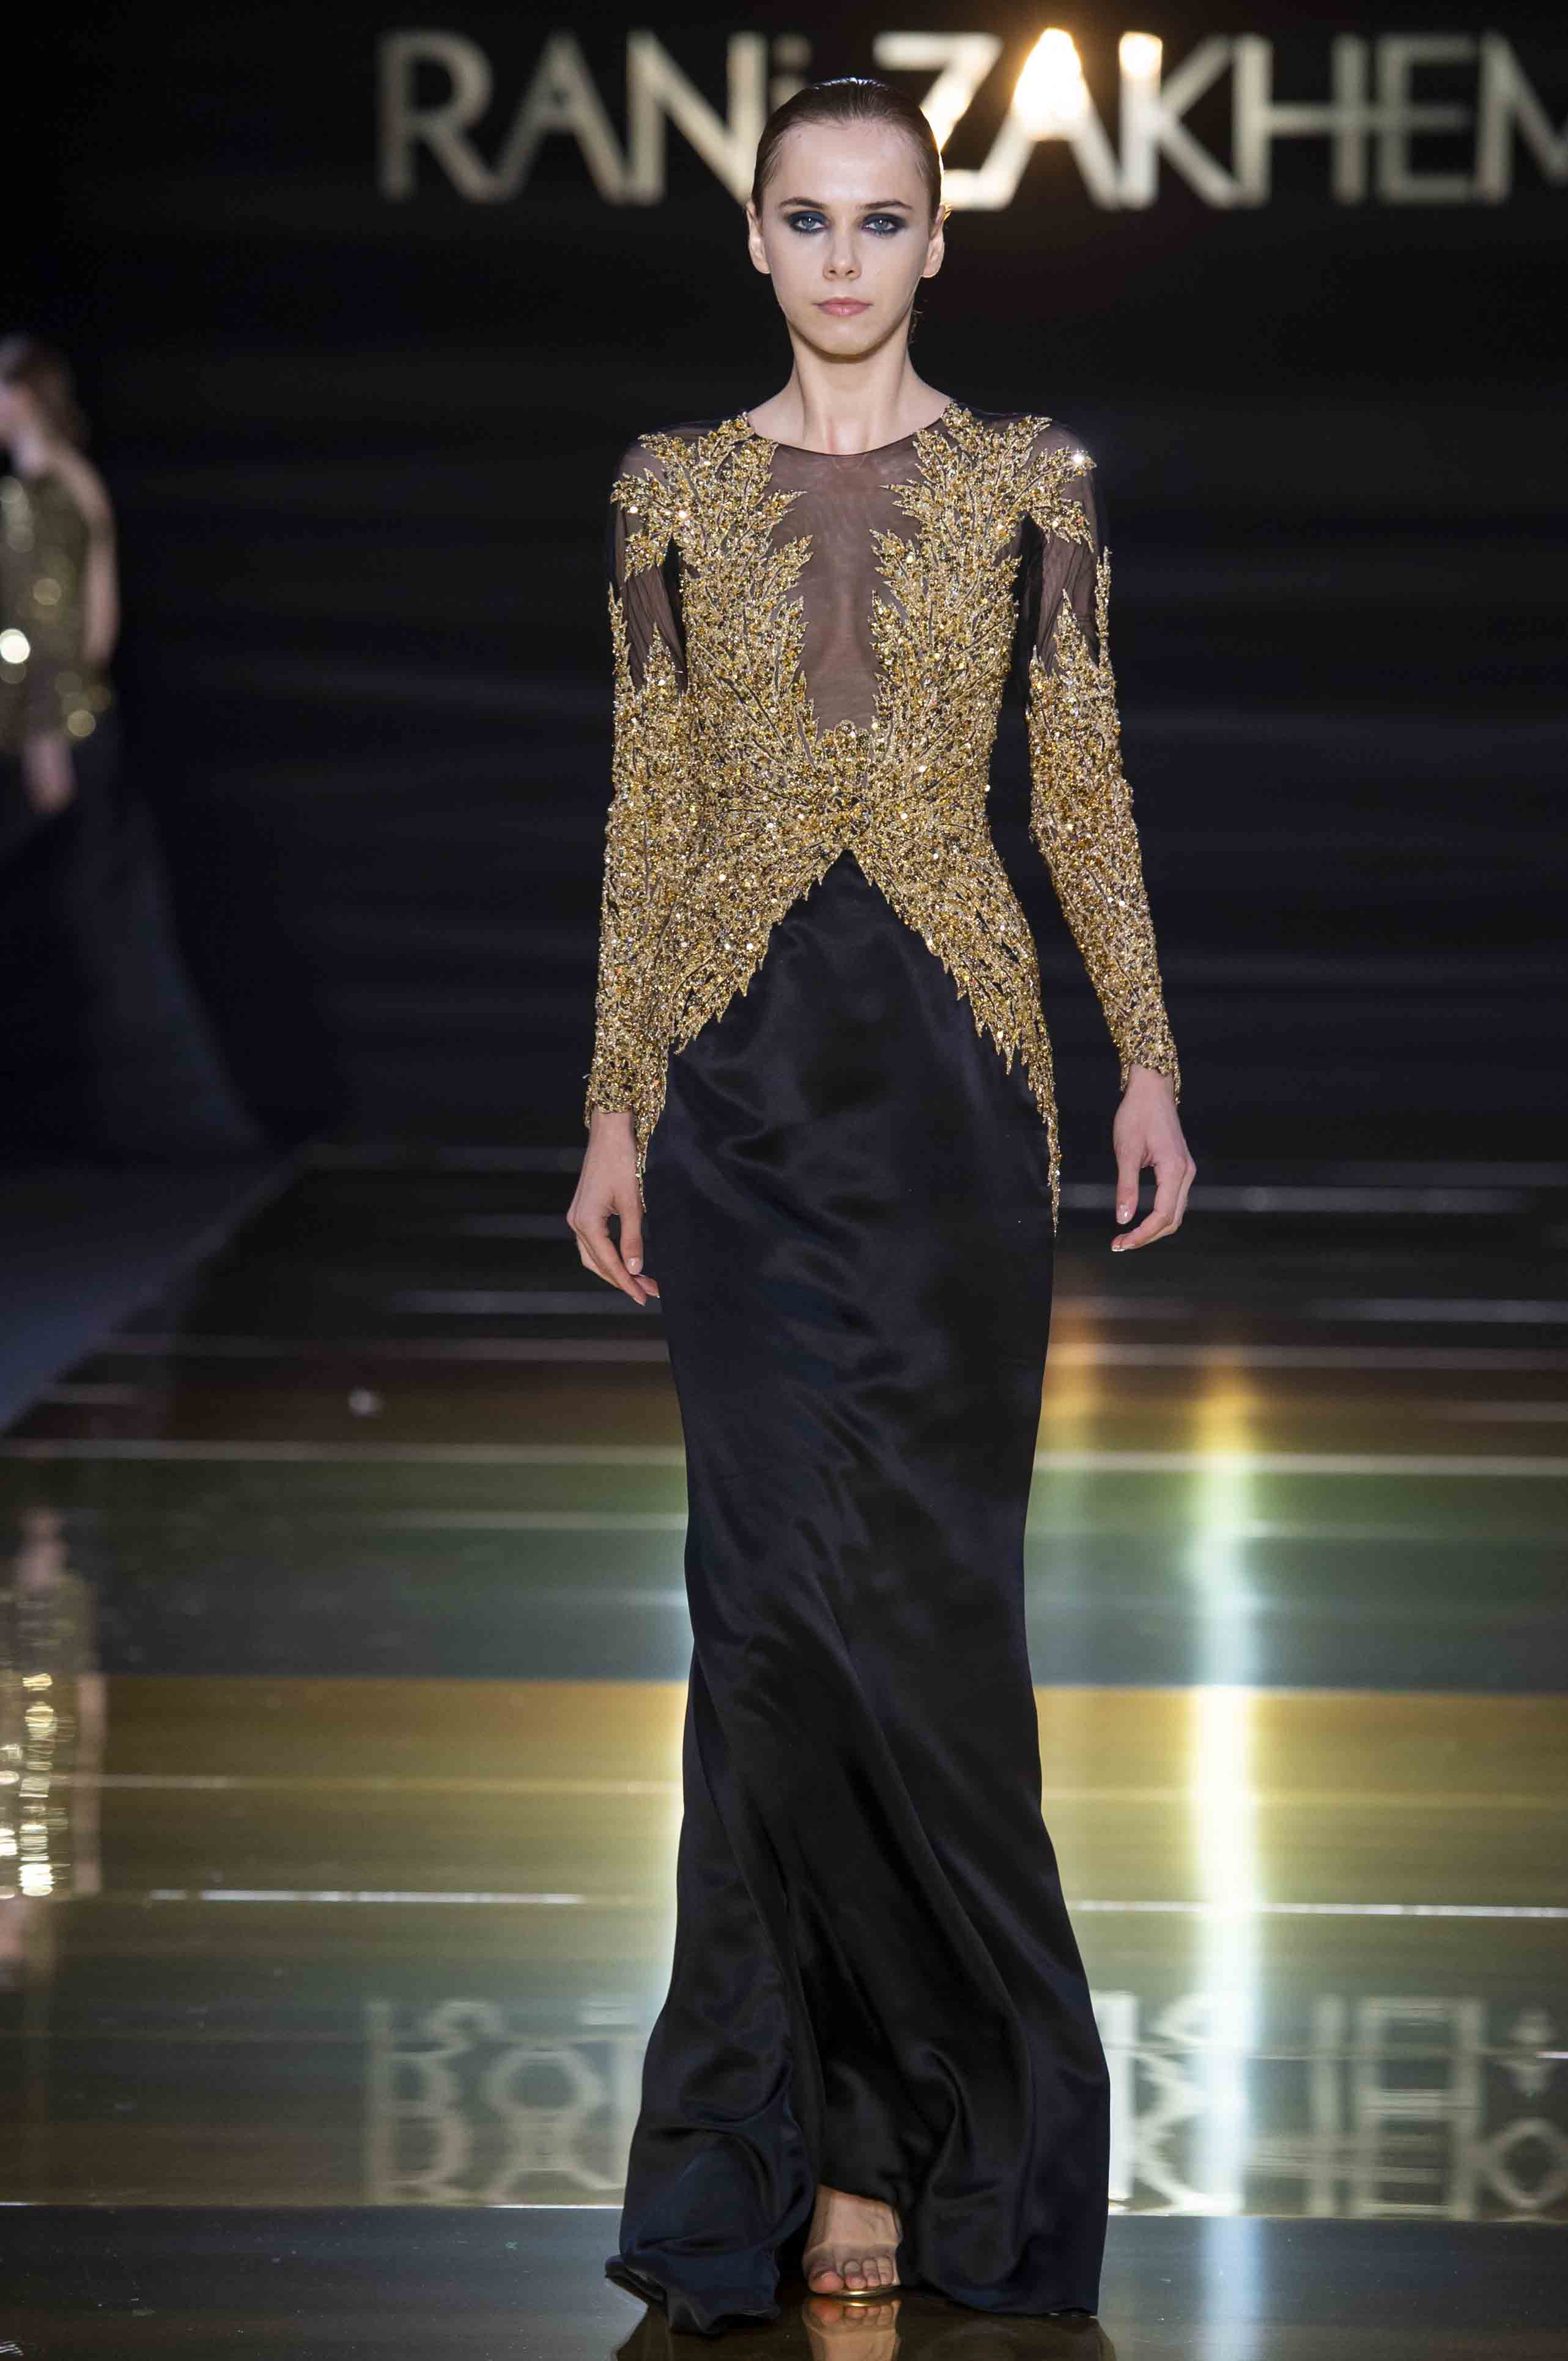 Rani zakhem couture collection automne hiver fall winter 2018 2019 pfw © imaxtree (22)